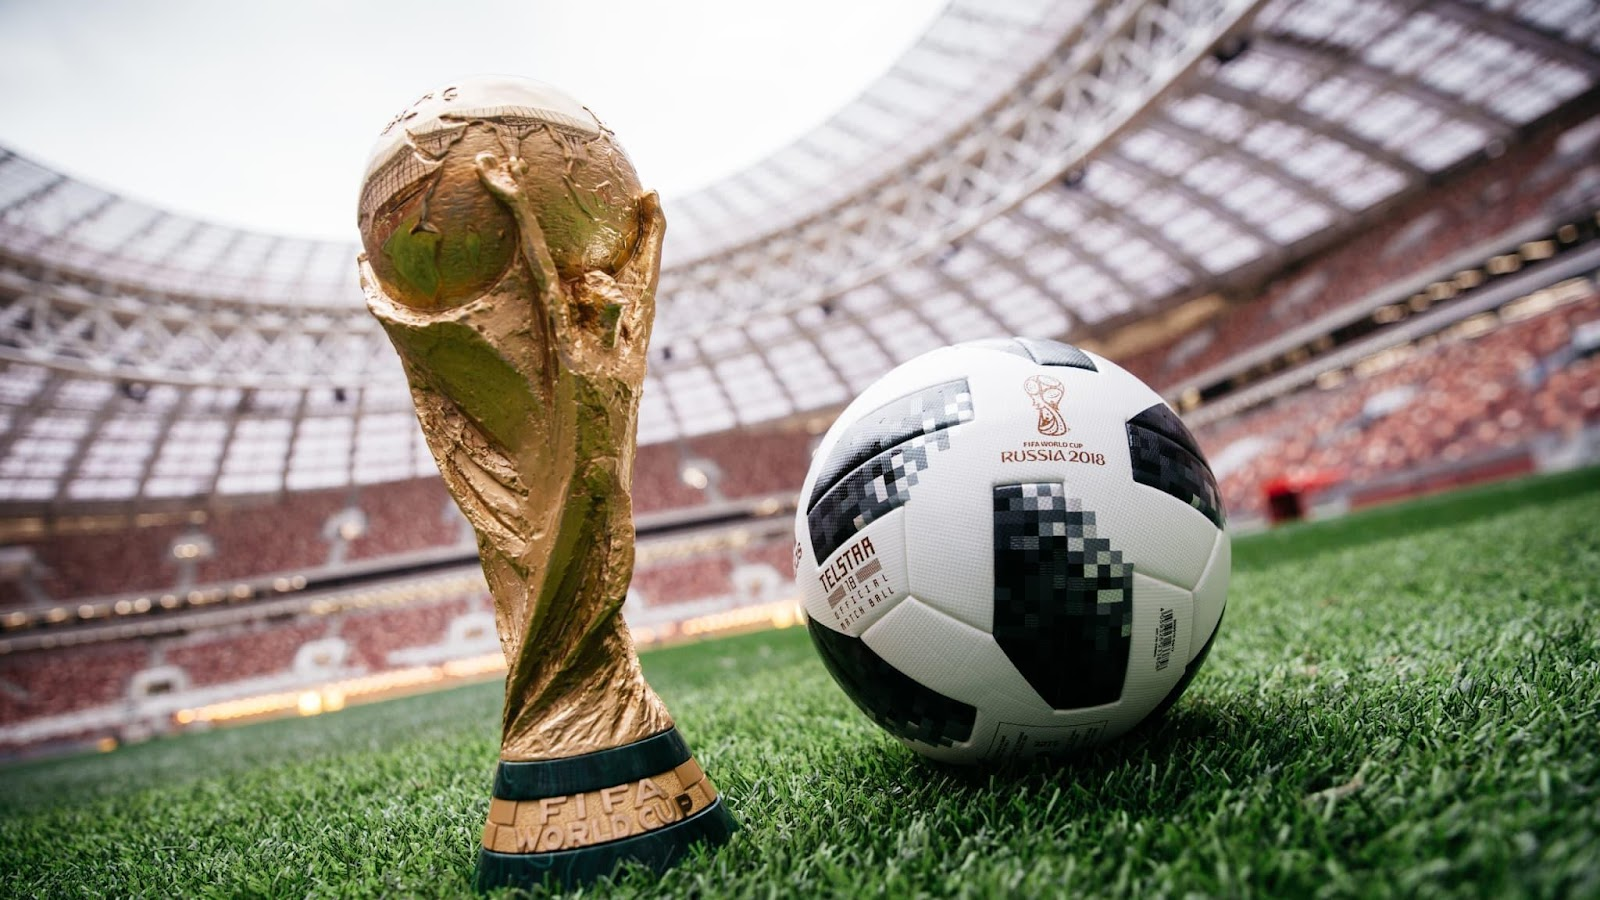 2018 FIFA World Cup™ - News - 2018 FIFA World Cup™ official match ball unveiled: an exciting re-imagining - FIFA.com